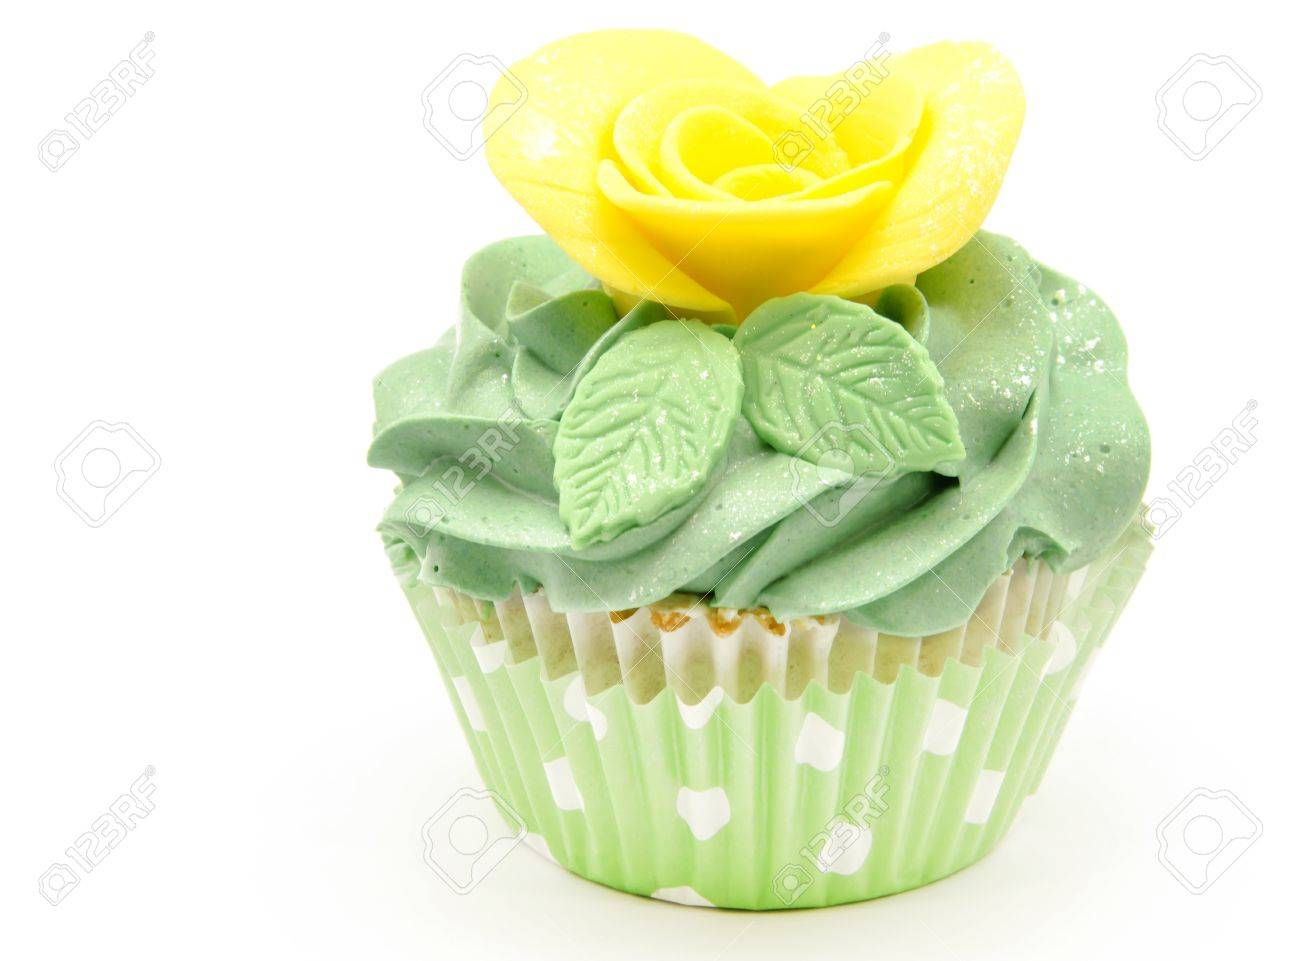 Cupcakes decorated with butter cream and flowers Stock Photo - 19256058